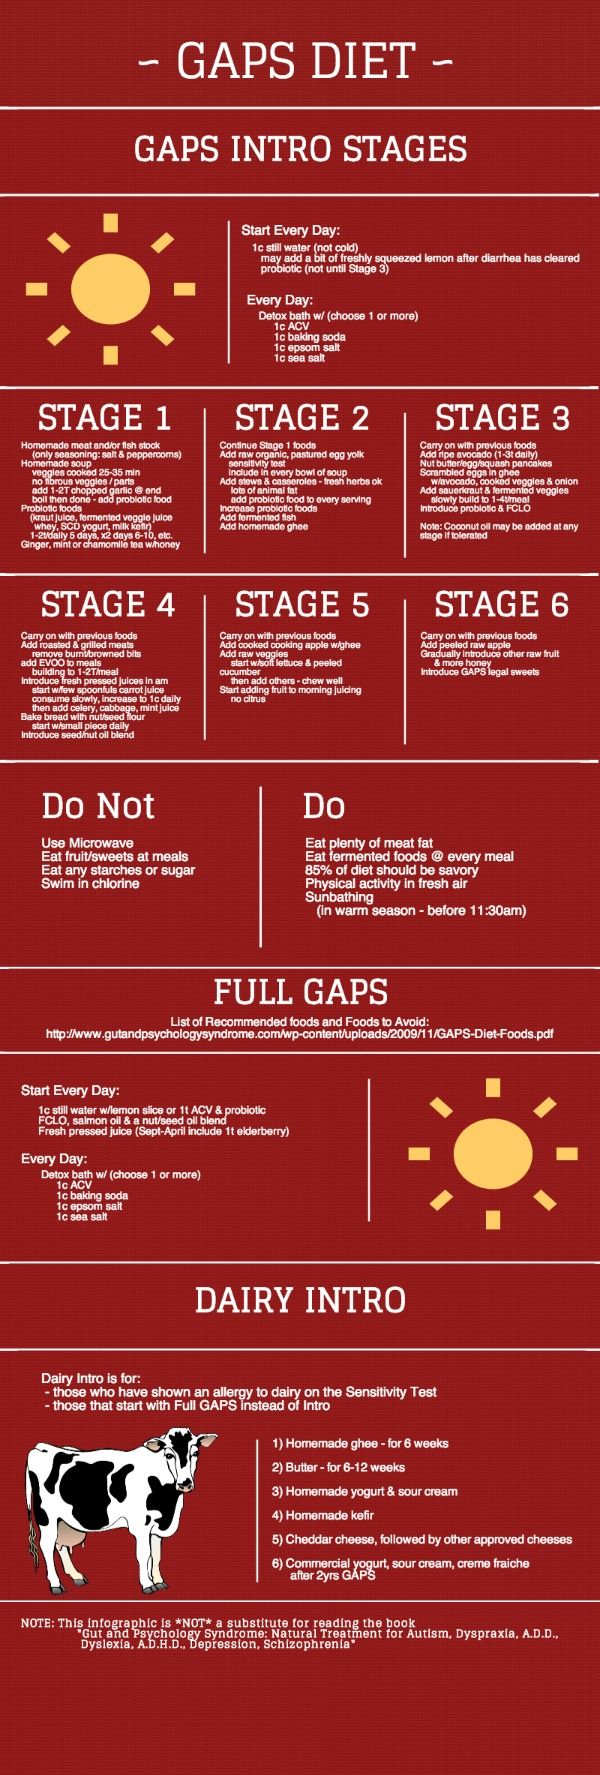 GAPS Diet Infographic | Piktochart Infographic Editor - great visual synopsis overview of intro stages and understanding